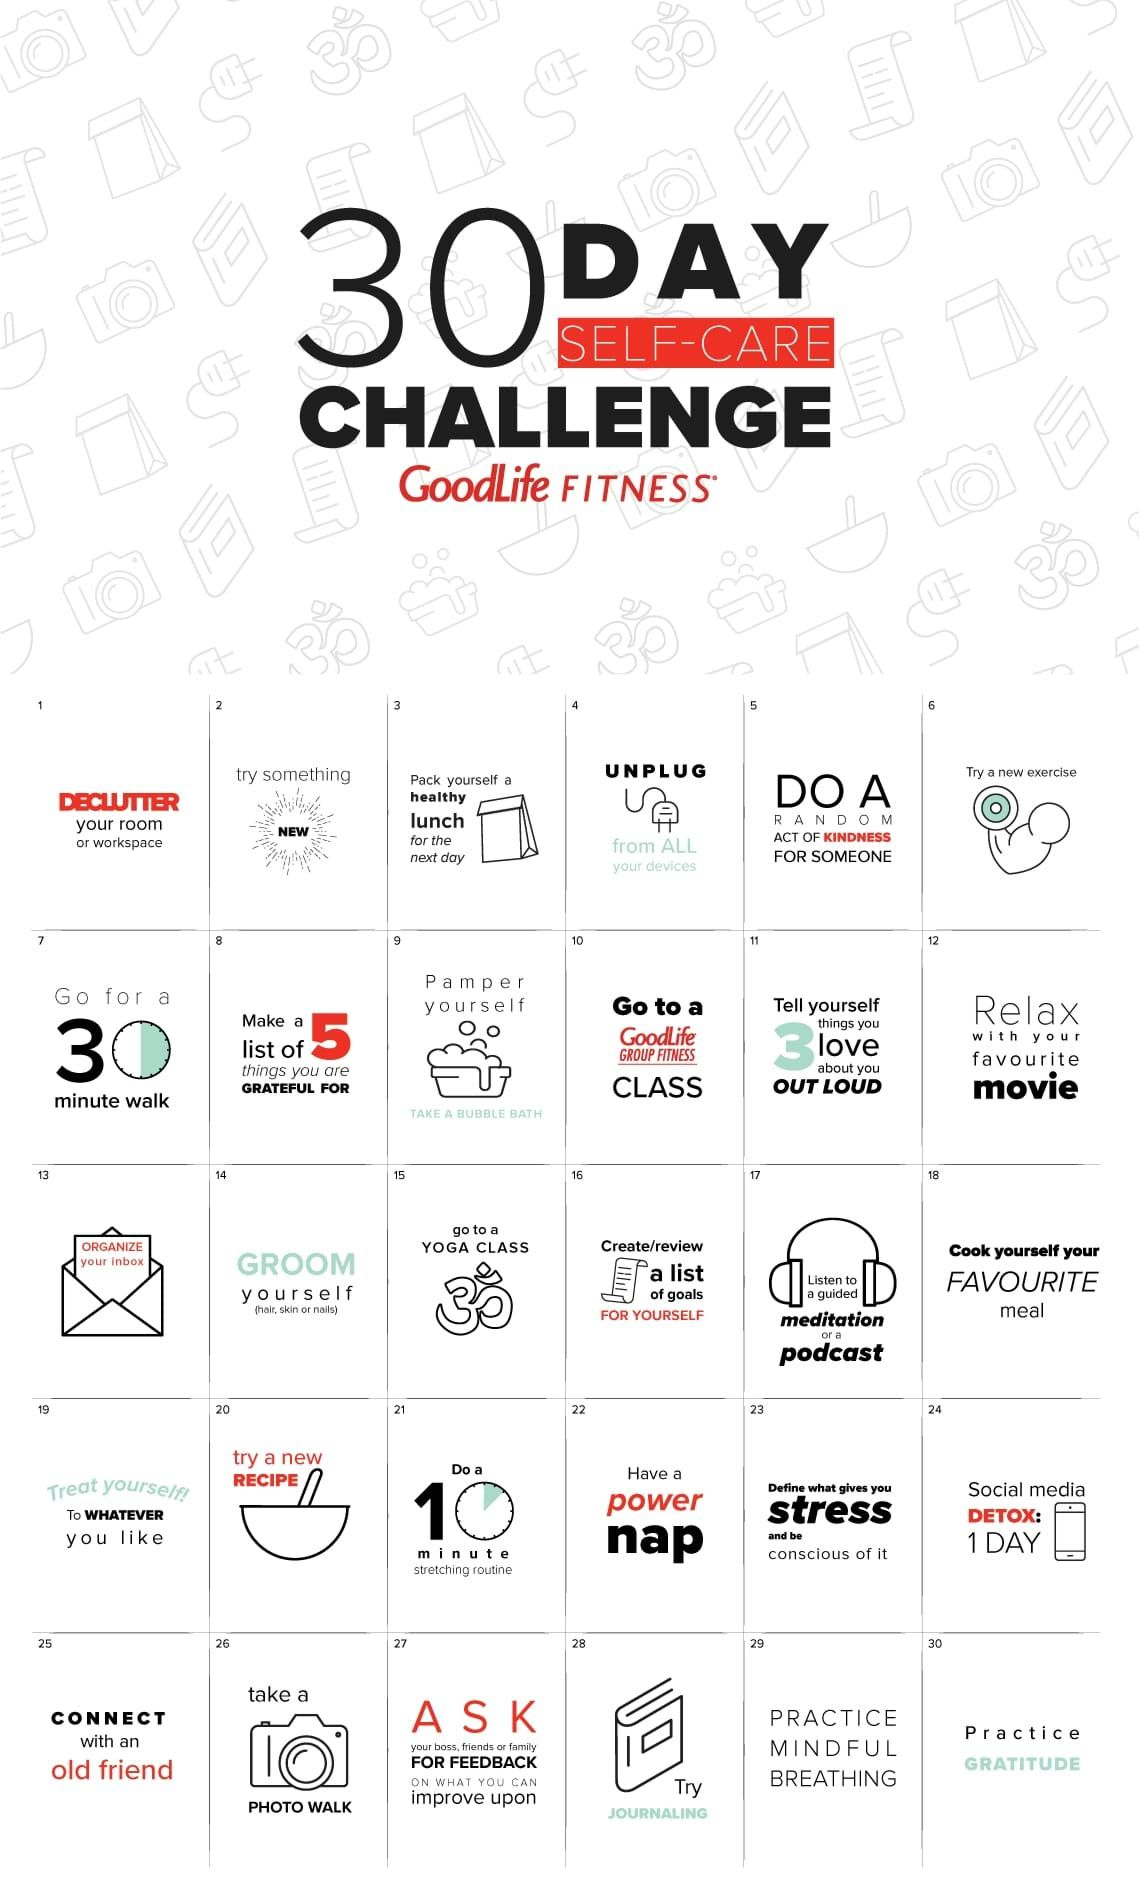 30 day self-care challenge | The GoodLife Fitness Blog